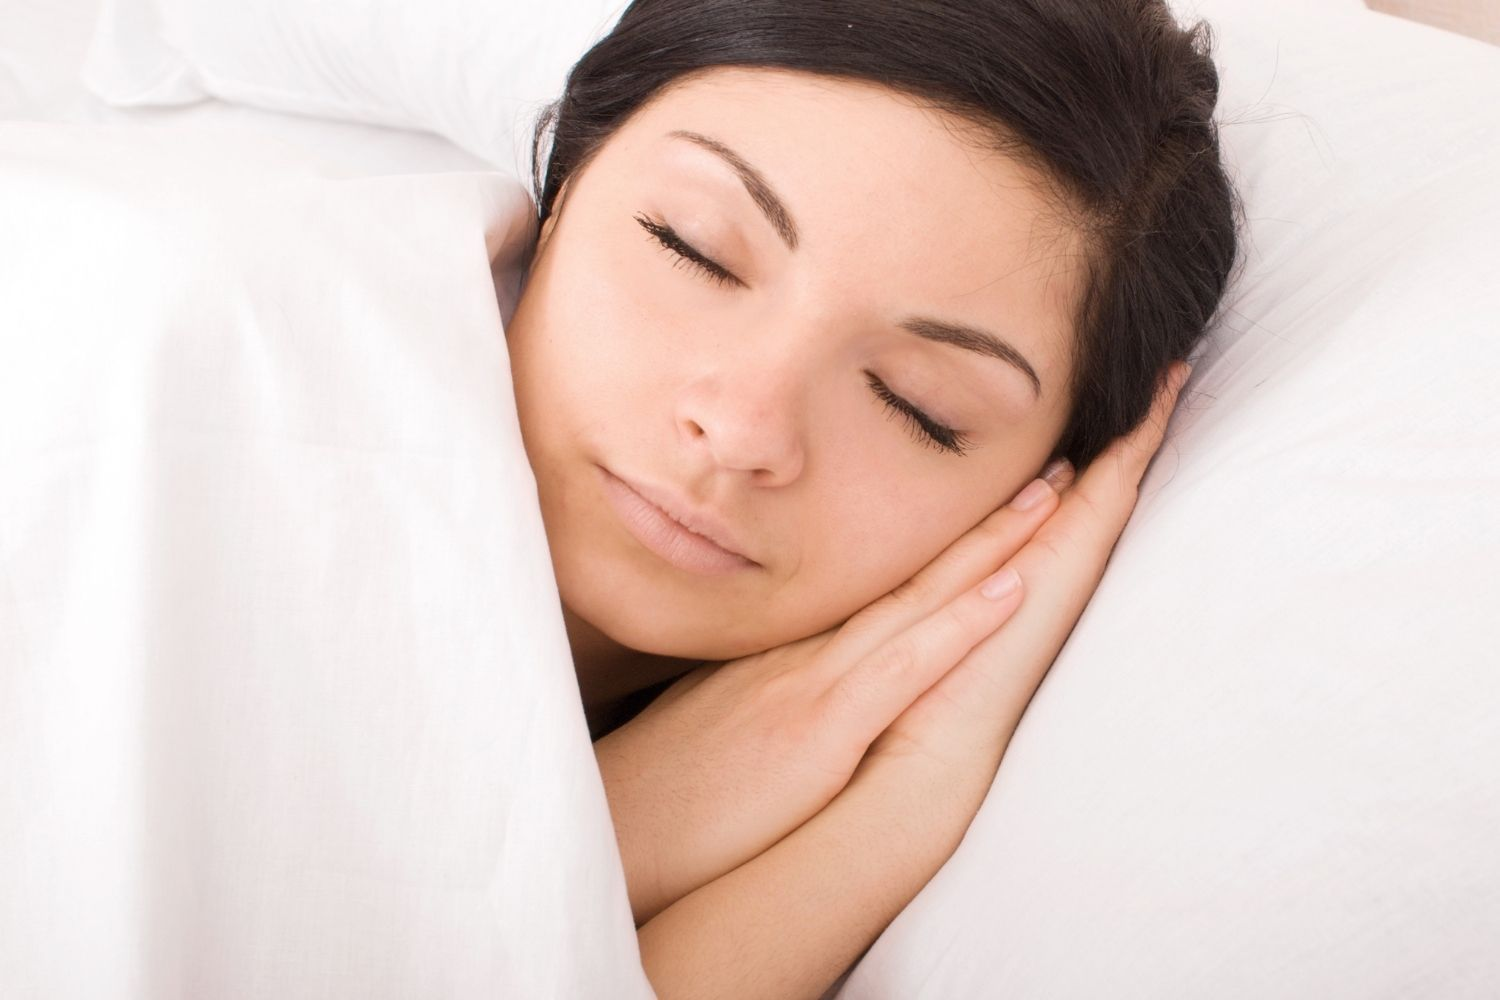 Get Sleep Now: Fall Asleep Quickly And Wake Up Energized